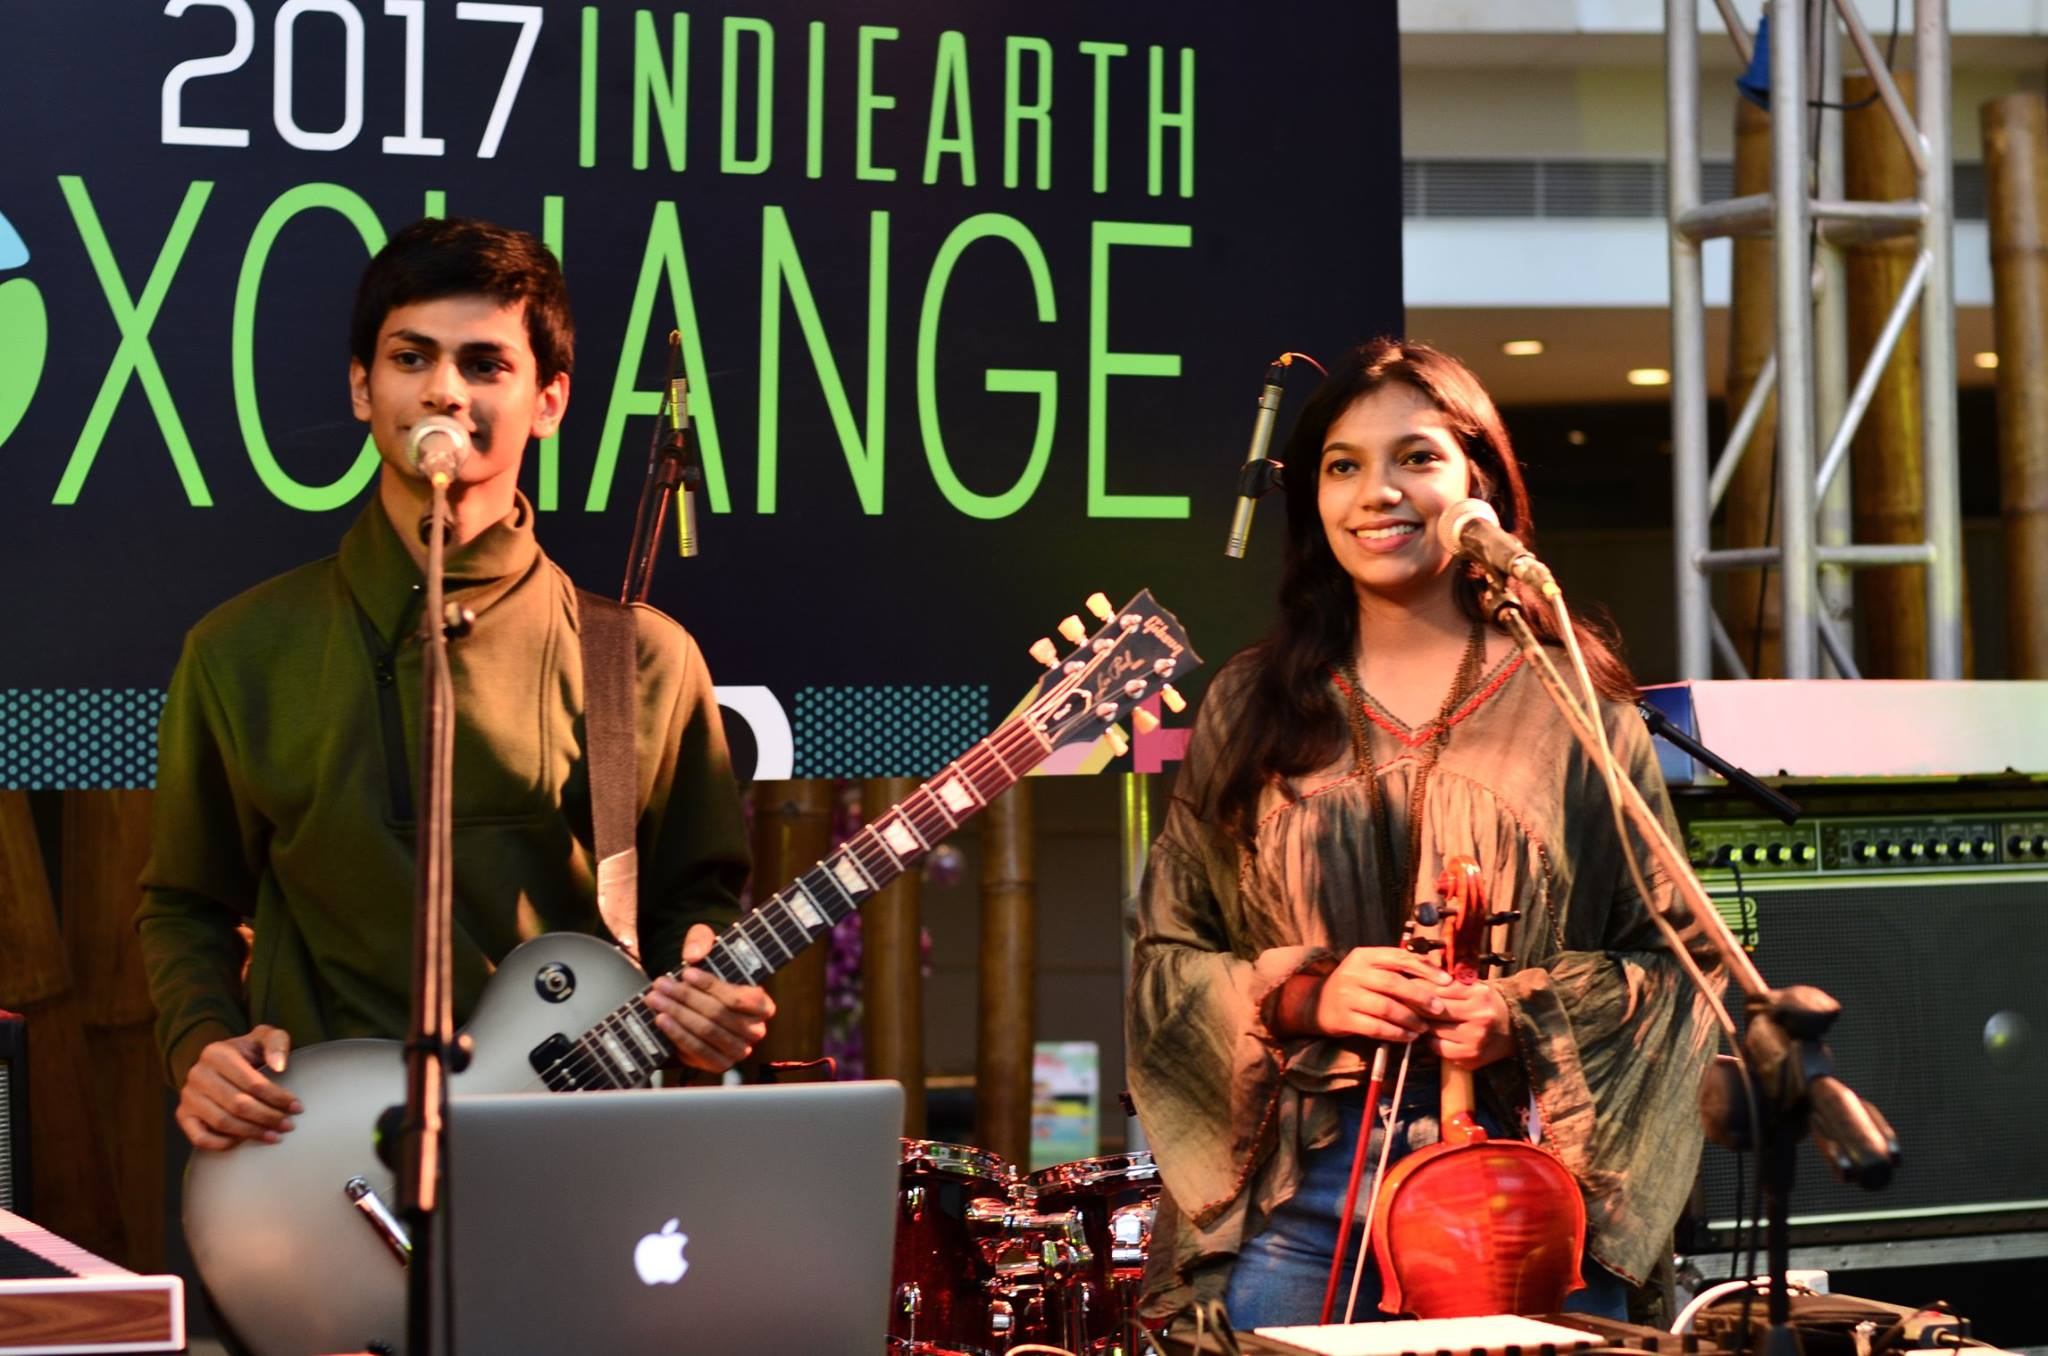 Indie100 artists perform at XChange 2017